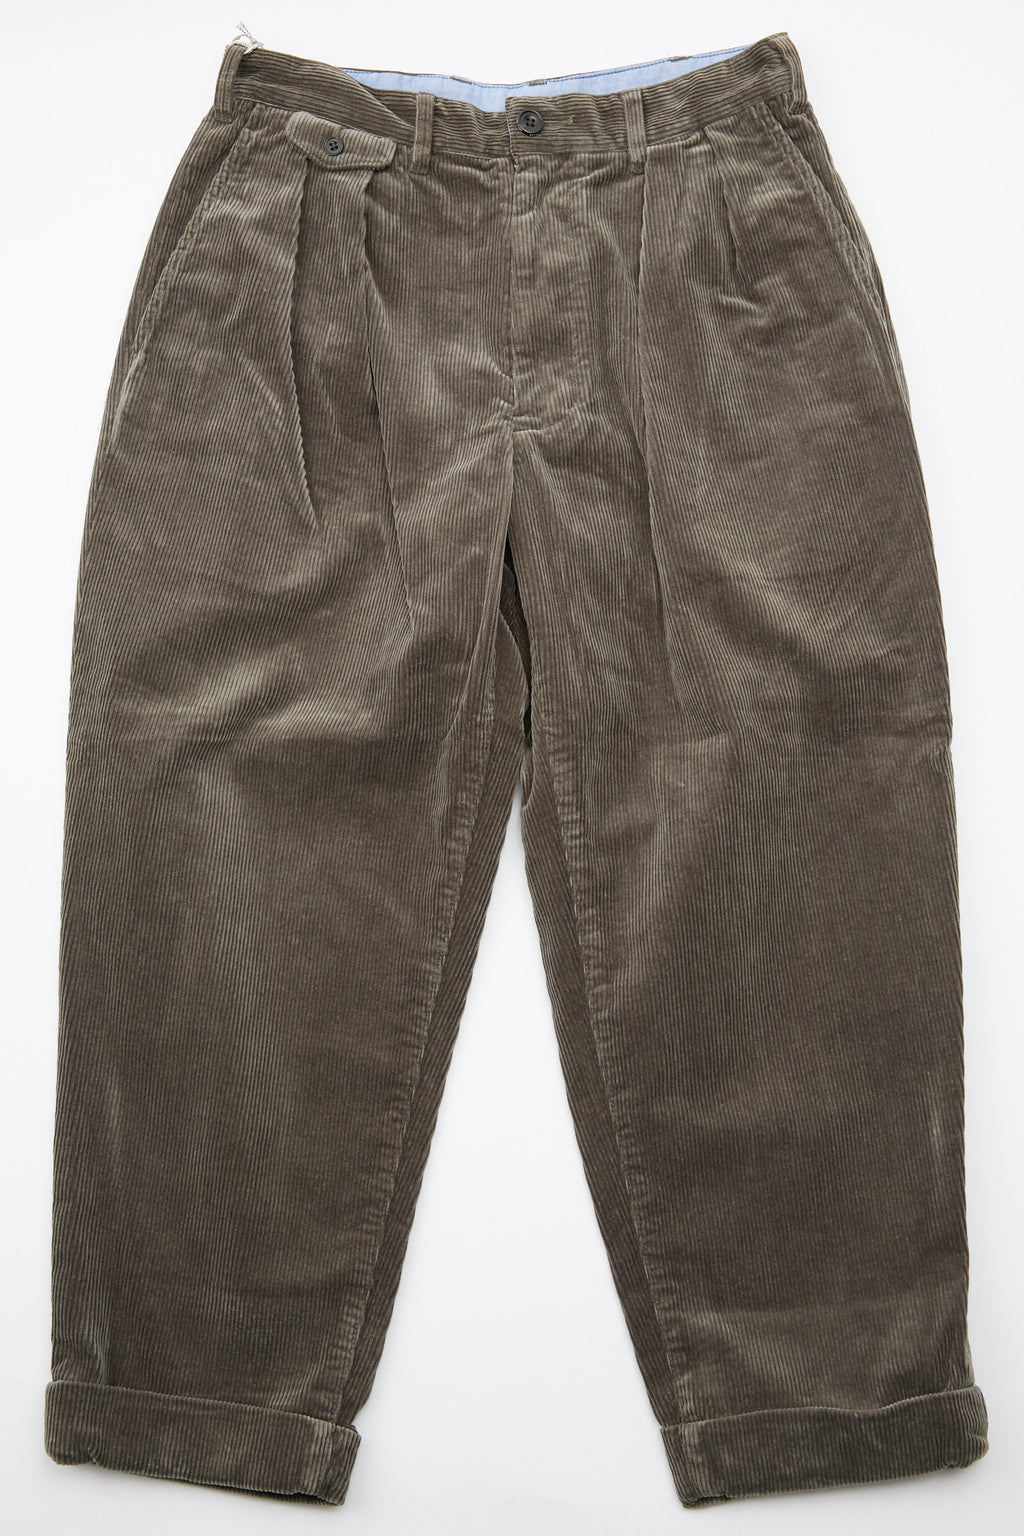 Beams Plus 2Pleats Corduroy Pant - Dark Green